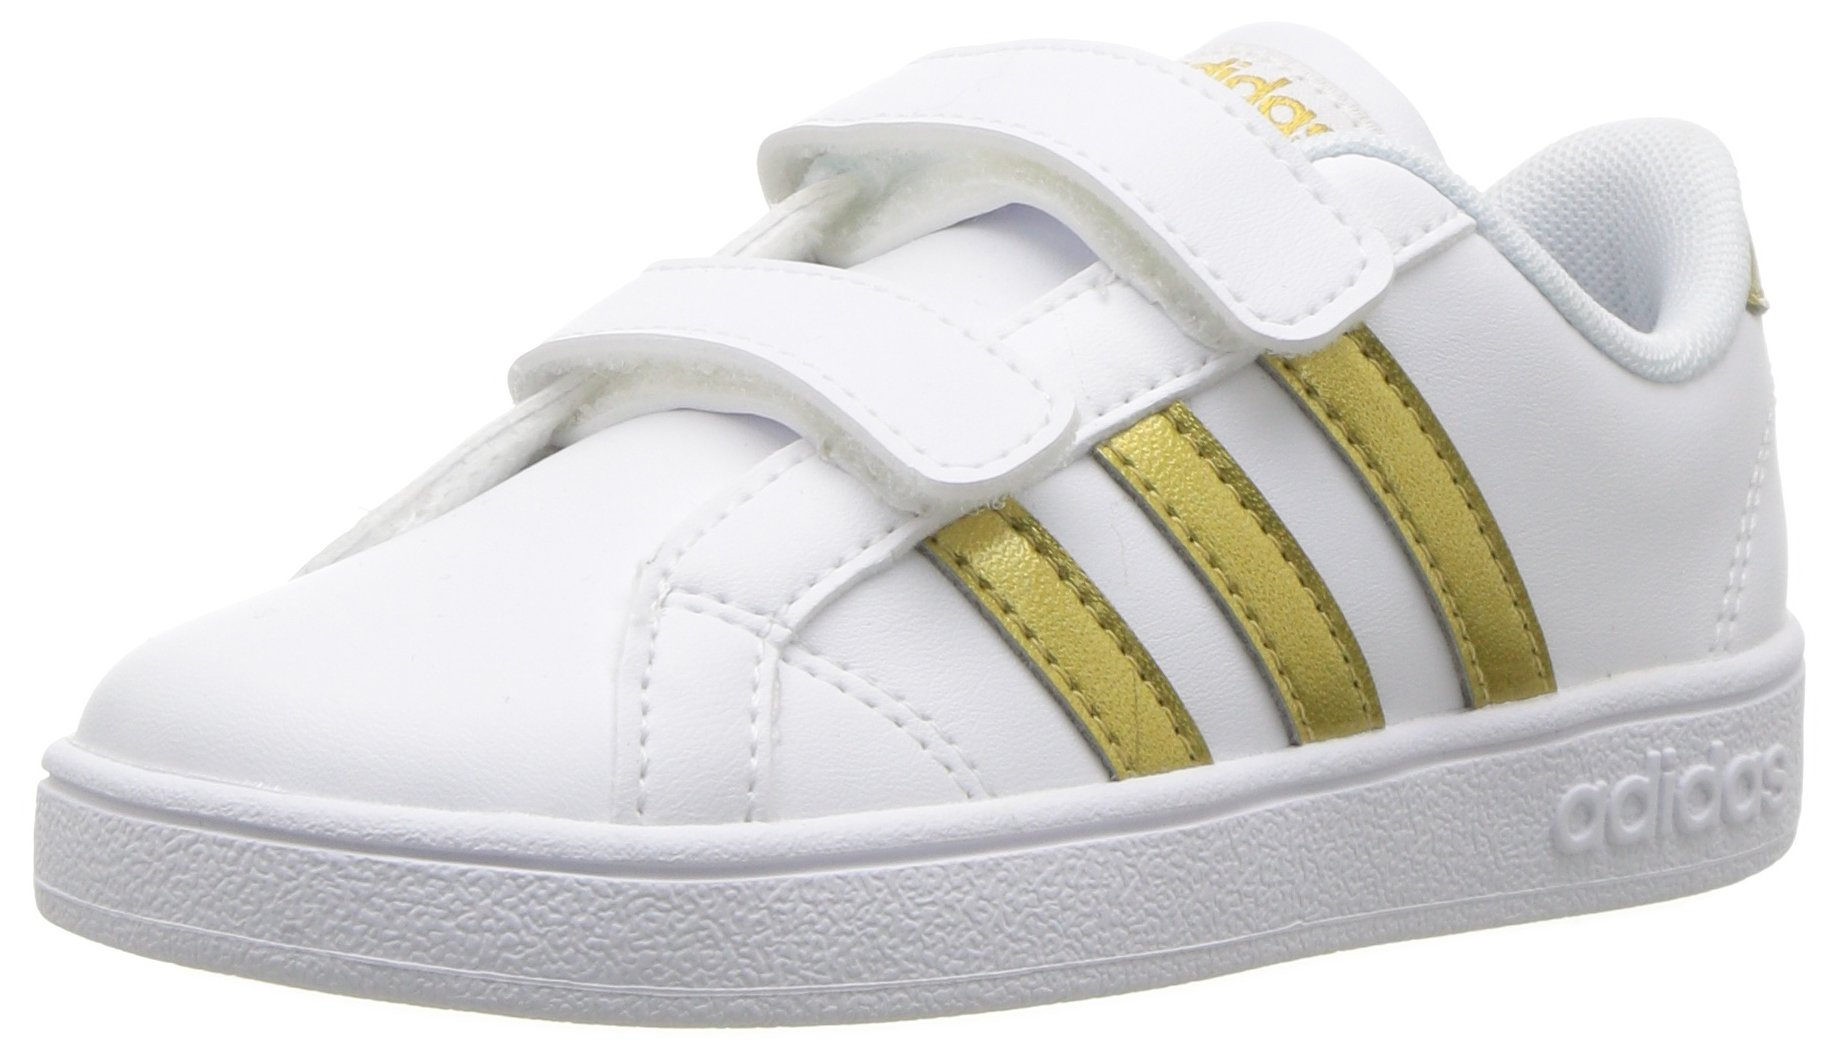 adidas Unisex-Kid's Toddler Baseline Shoes Sneaker, White/Matte Gold/Black, 9